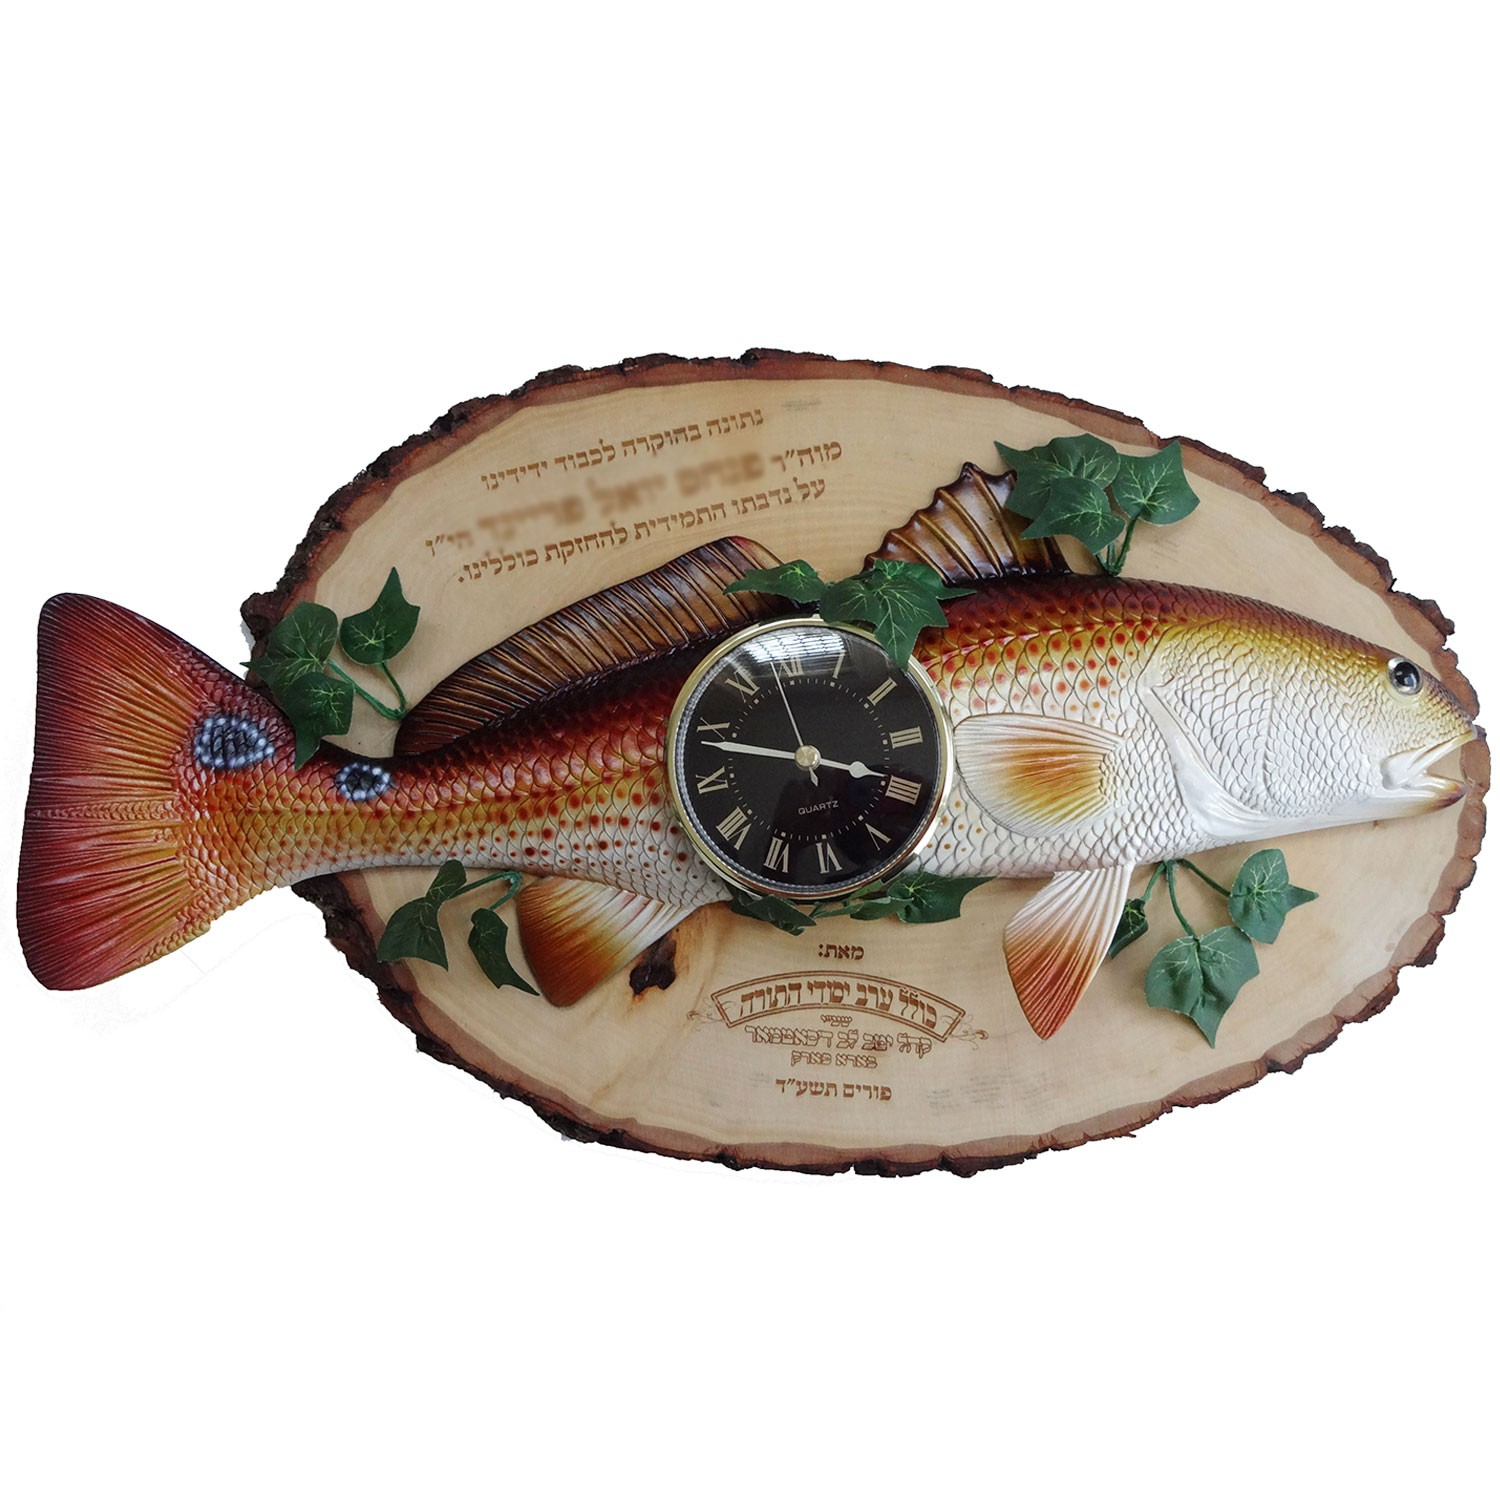 Sterlion-Creations-Fish-Plaque-with-Clock